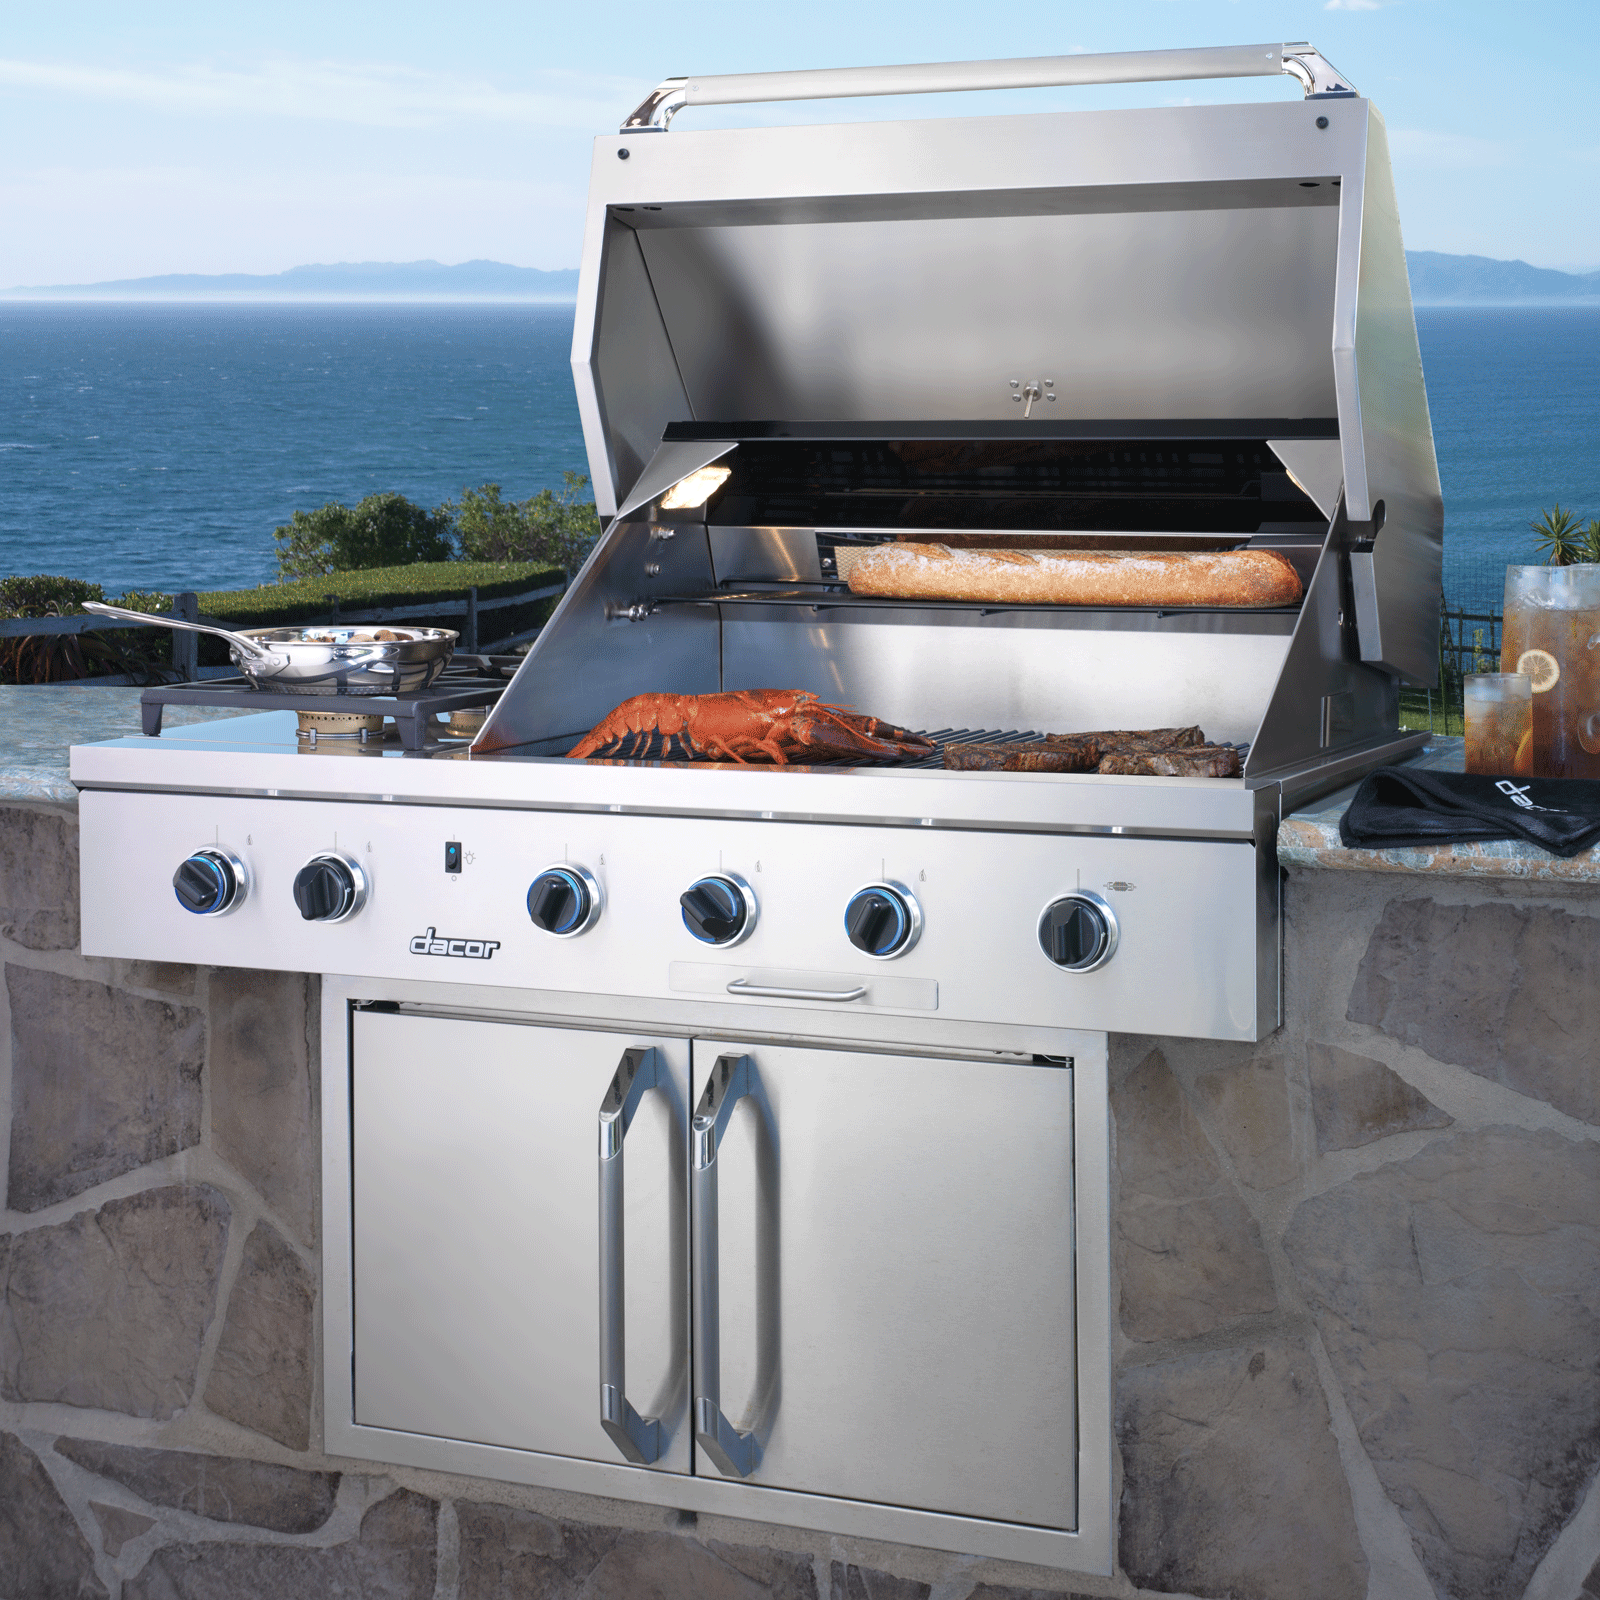 "Dacor Heritage 52"" Outdoor Grill, in Stainless Steel with Chrome Trim, for use with Liquid Propane"